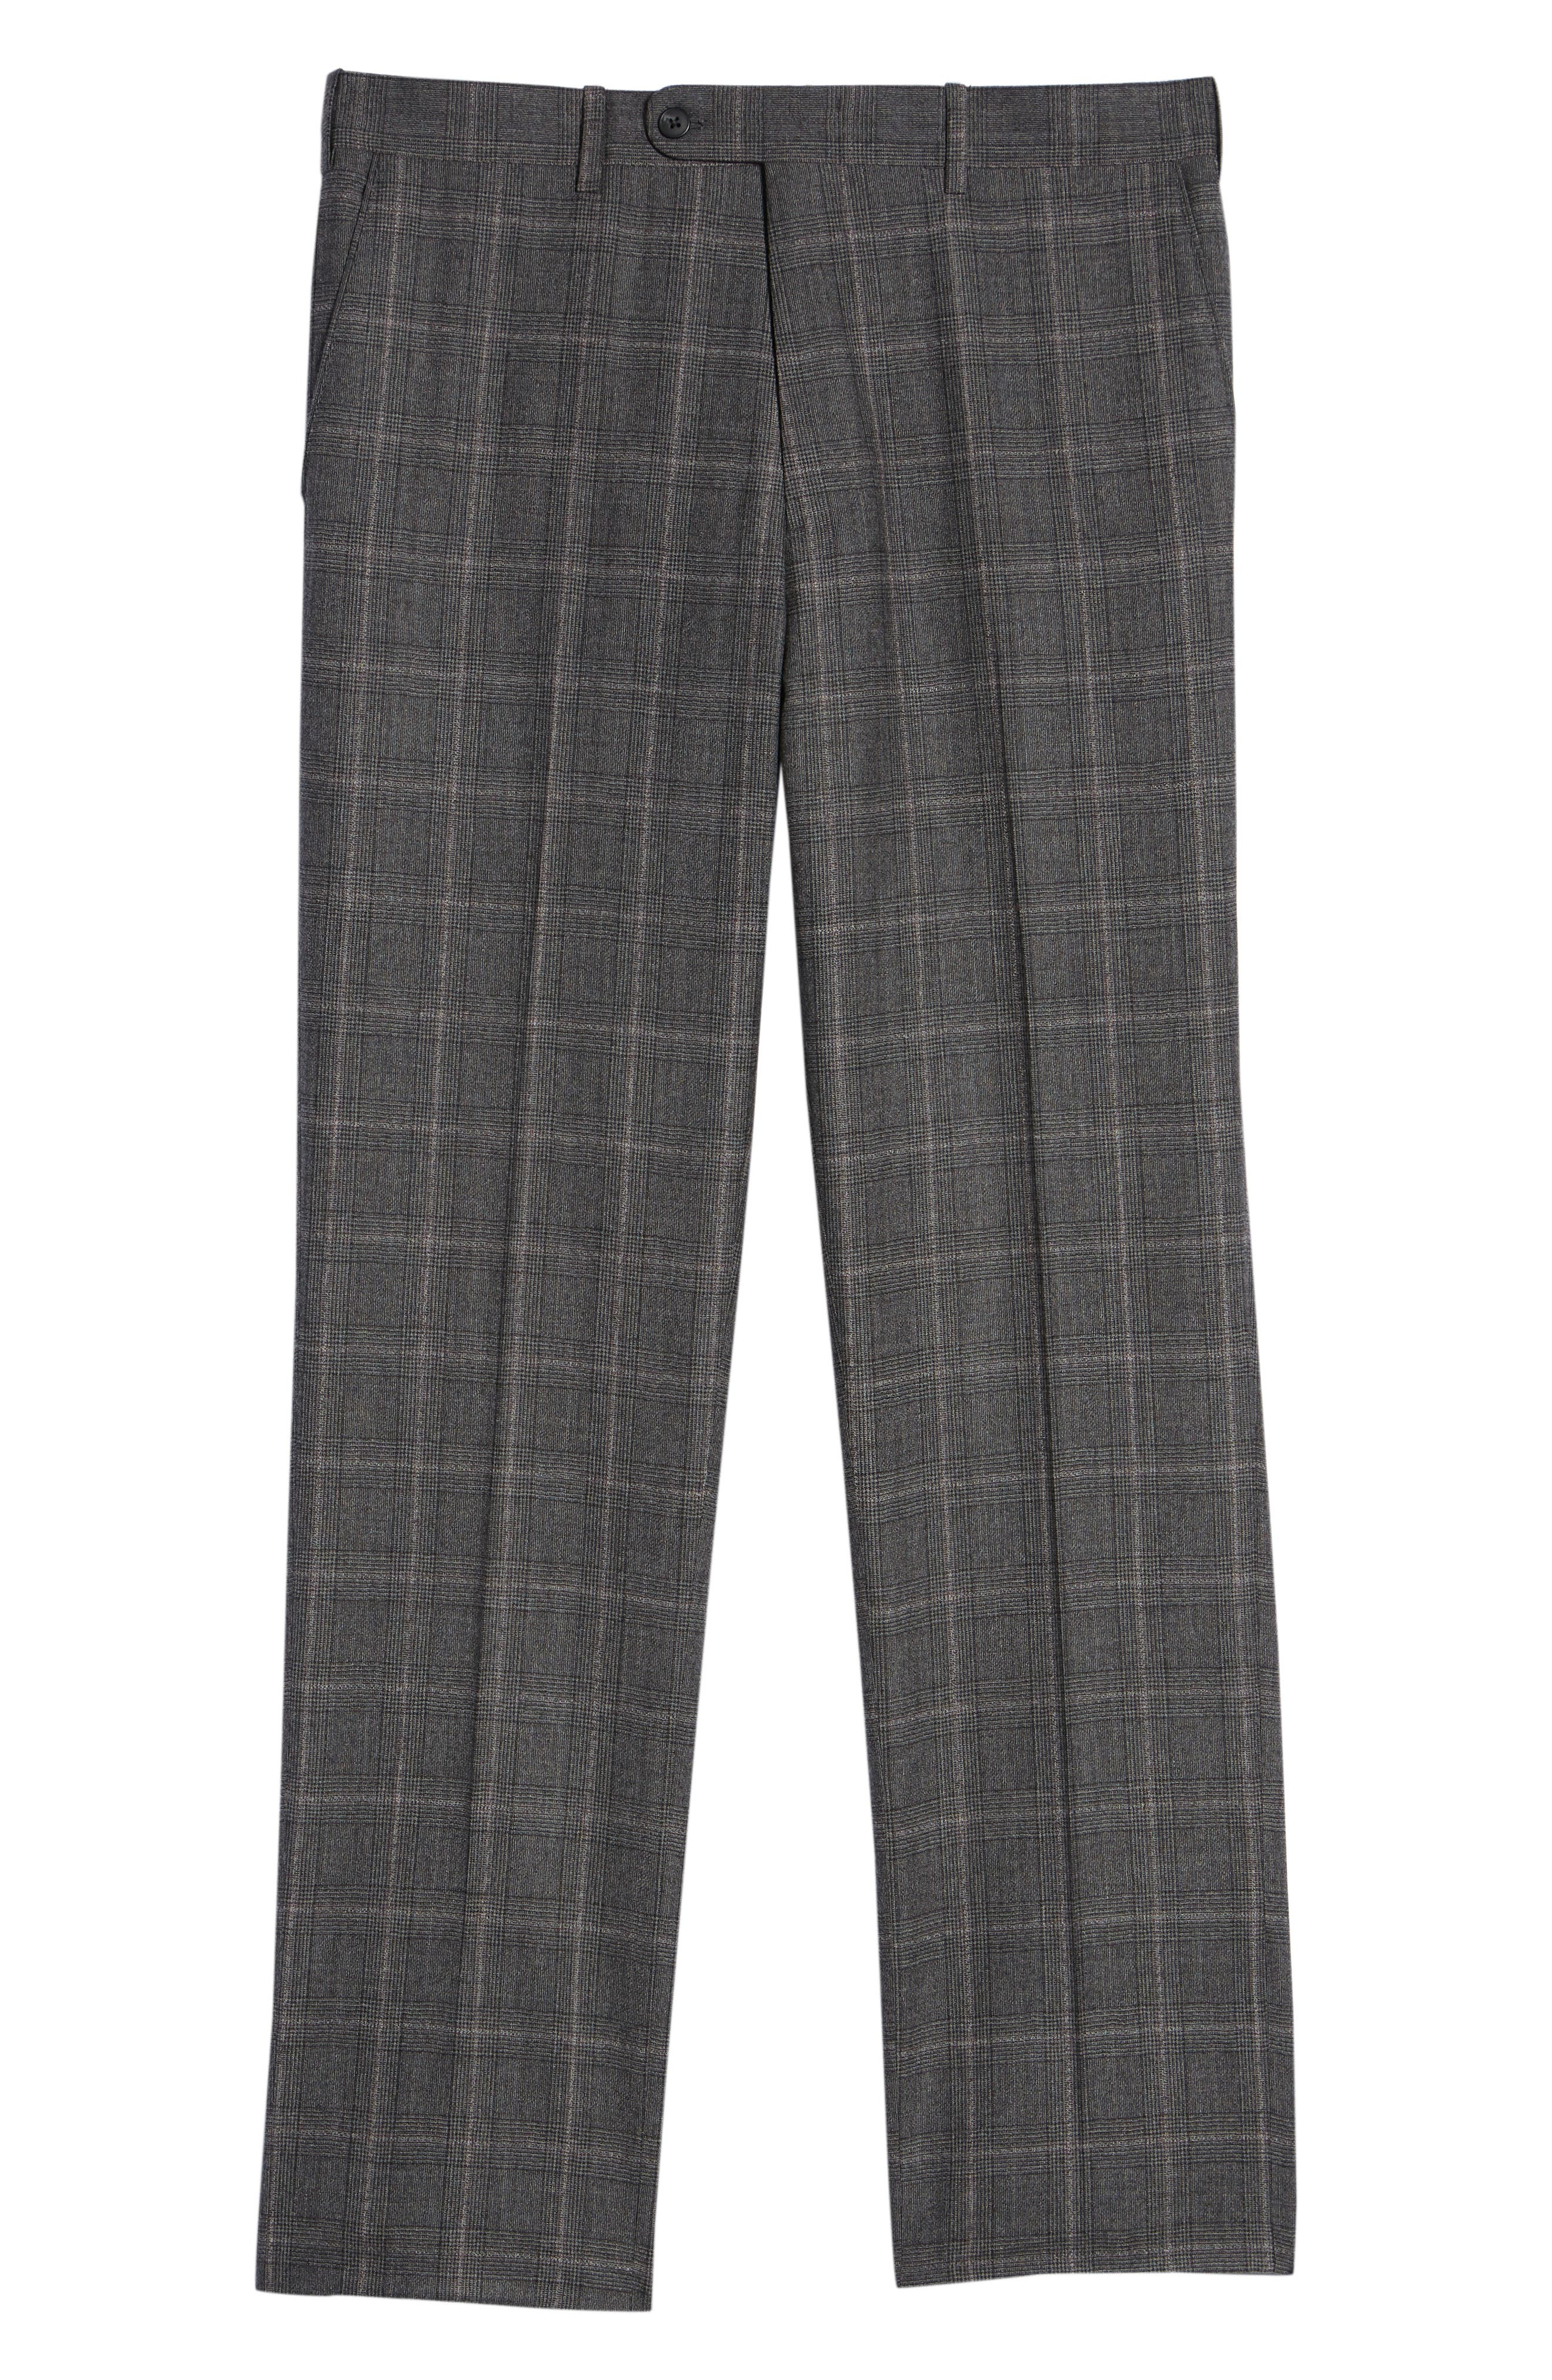 Torino Traditional Fit Flat Front Plaid Wool & Cashmere Trousers,                             Alternate thumbnail 6, color,                             GREY